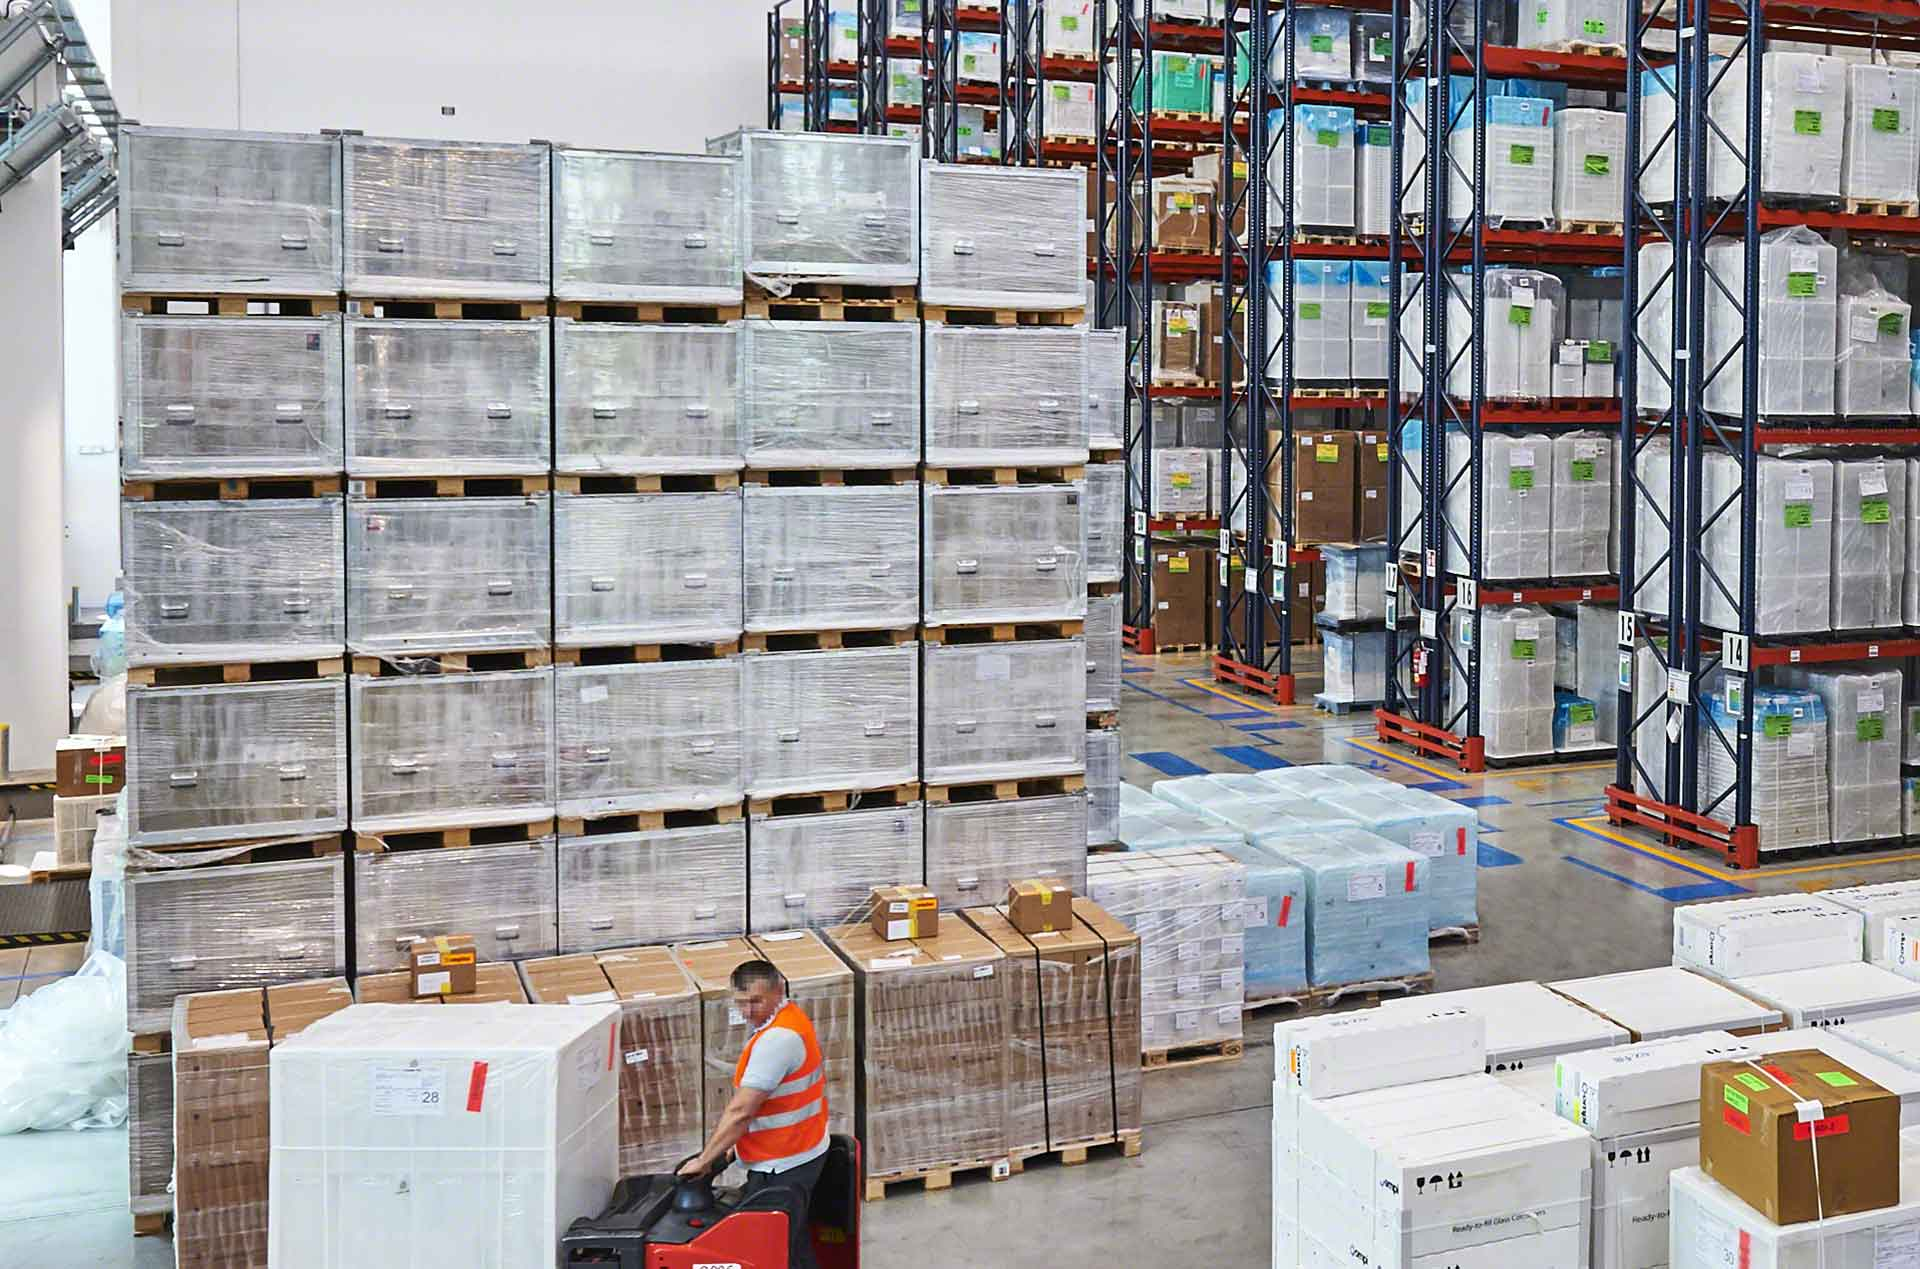 Block stacking consists of stacking goods on the floor of the warehouse